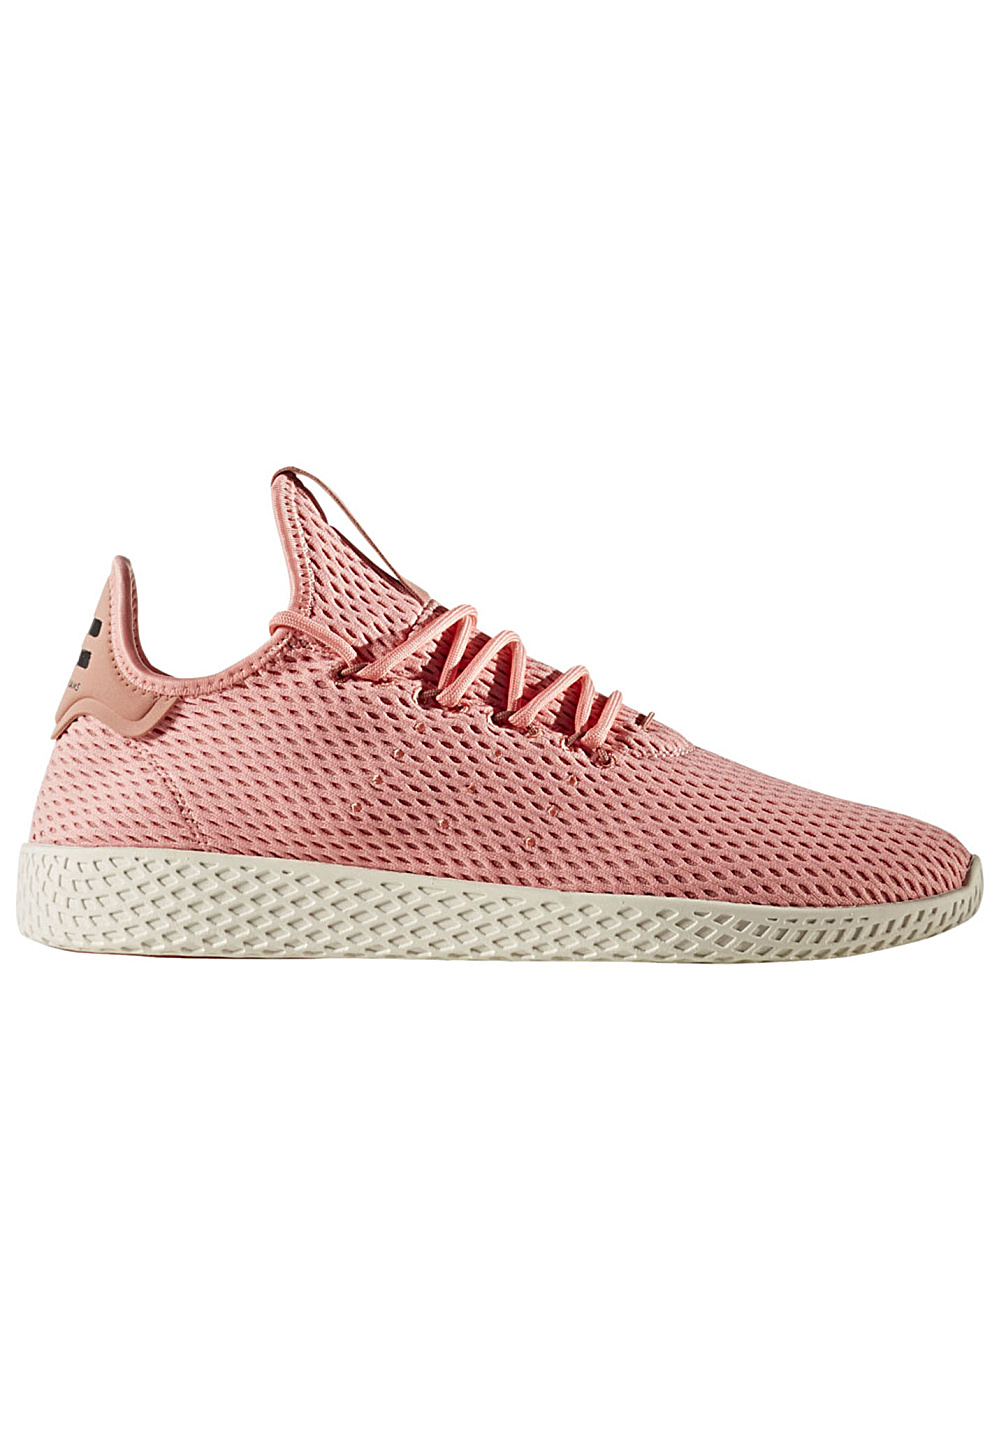 ADIDAS ORIGINALS Pharrell Williams Tennis HU Baskets Rose